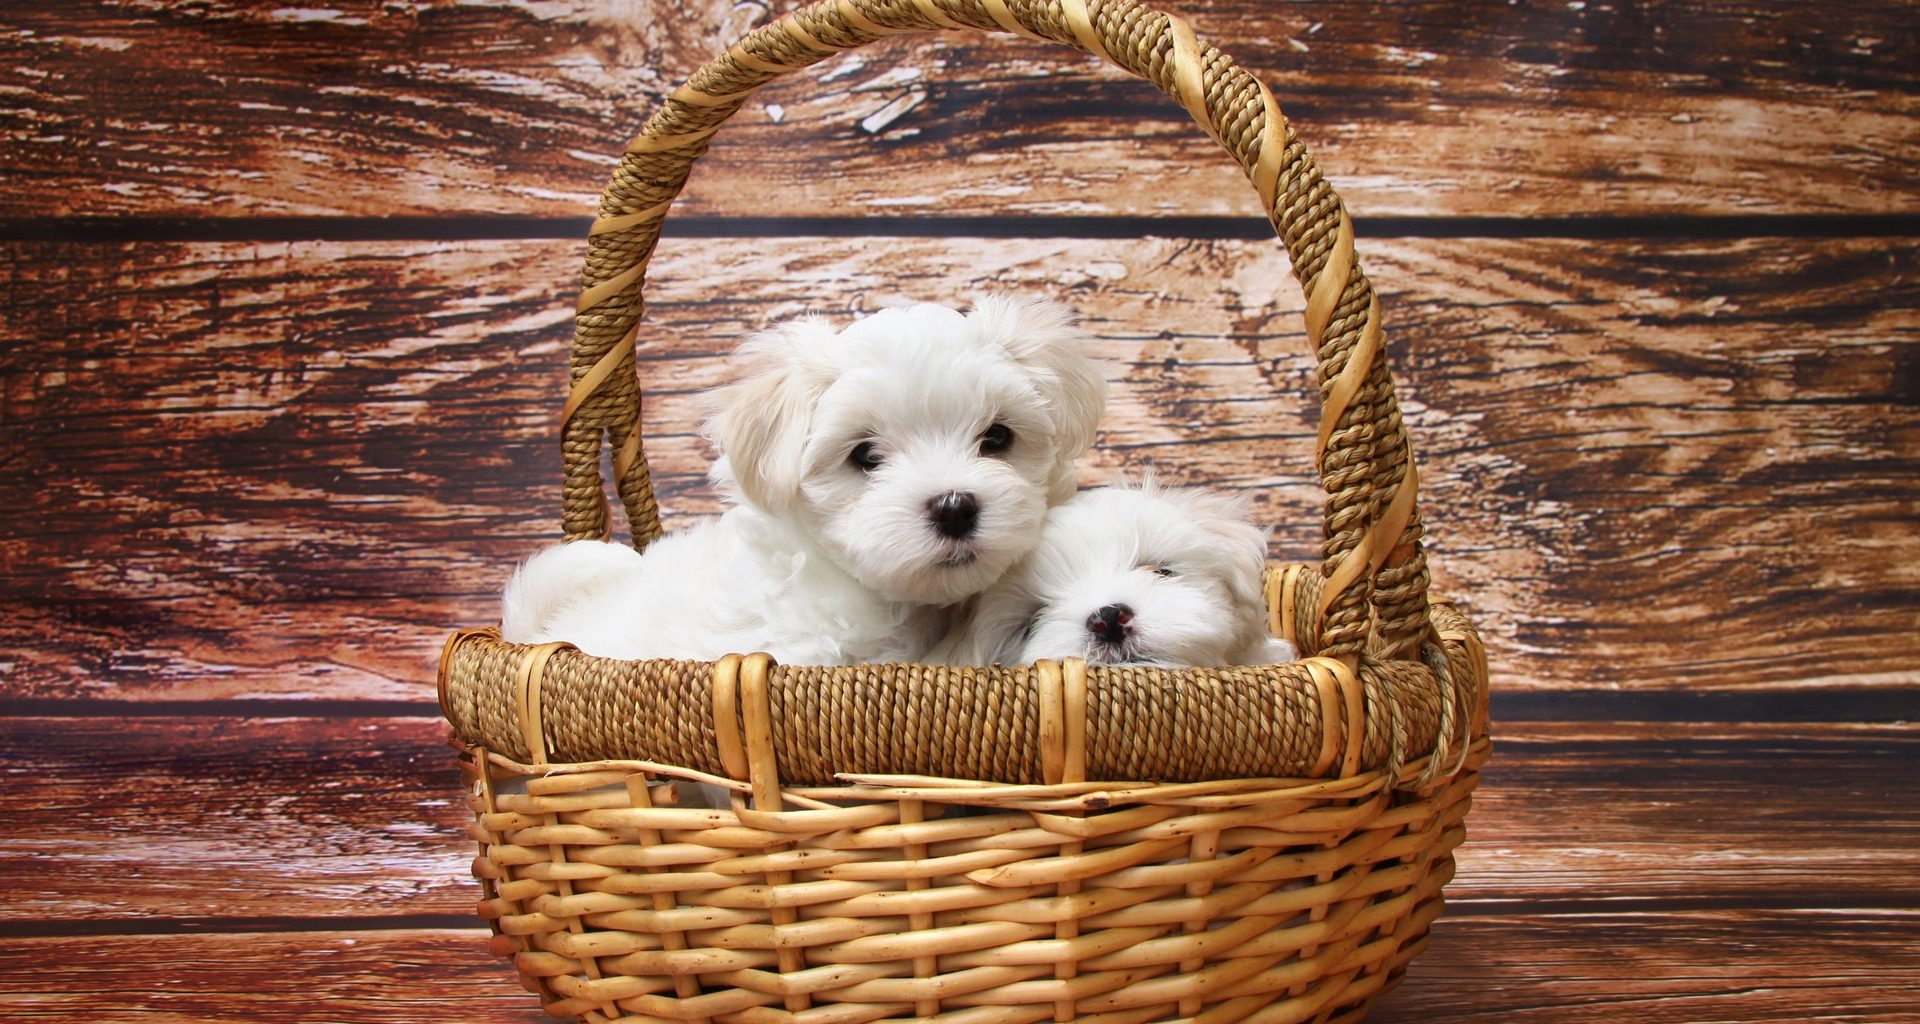 Best Gifts for Dogs - Featured Image